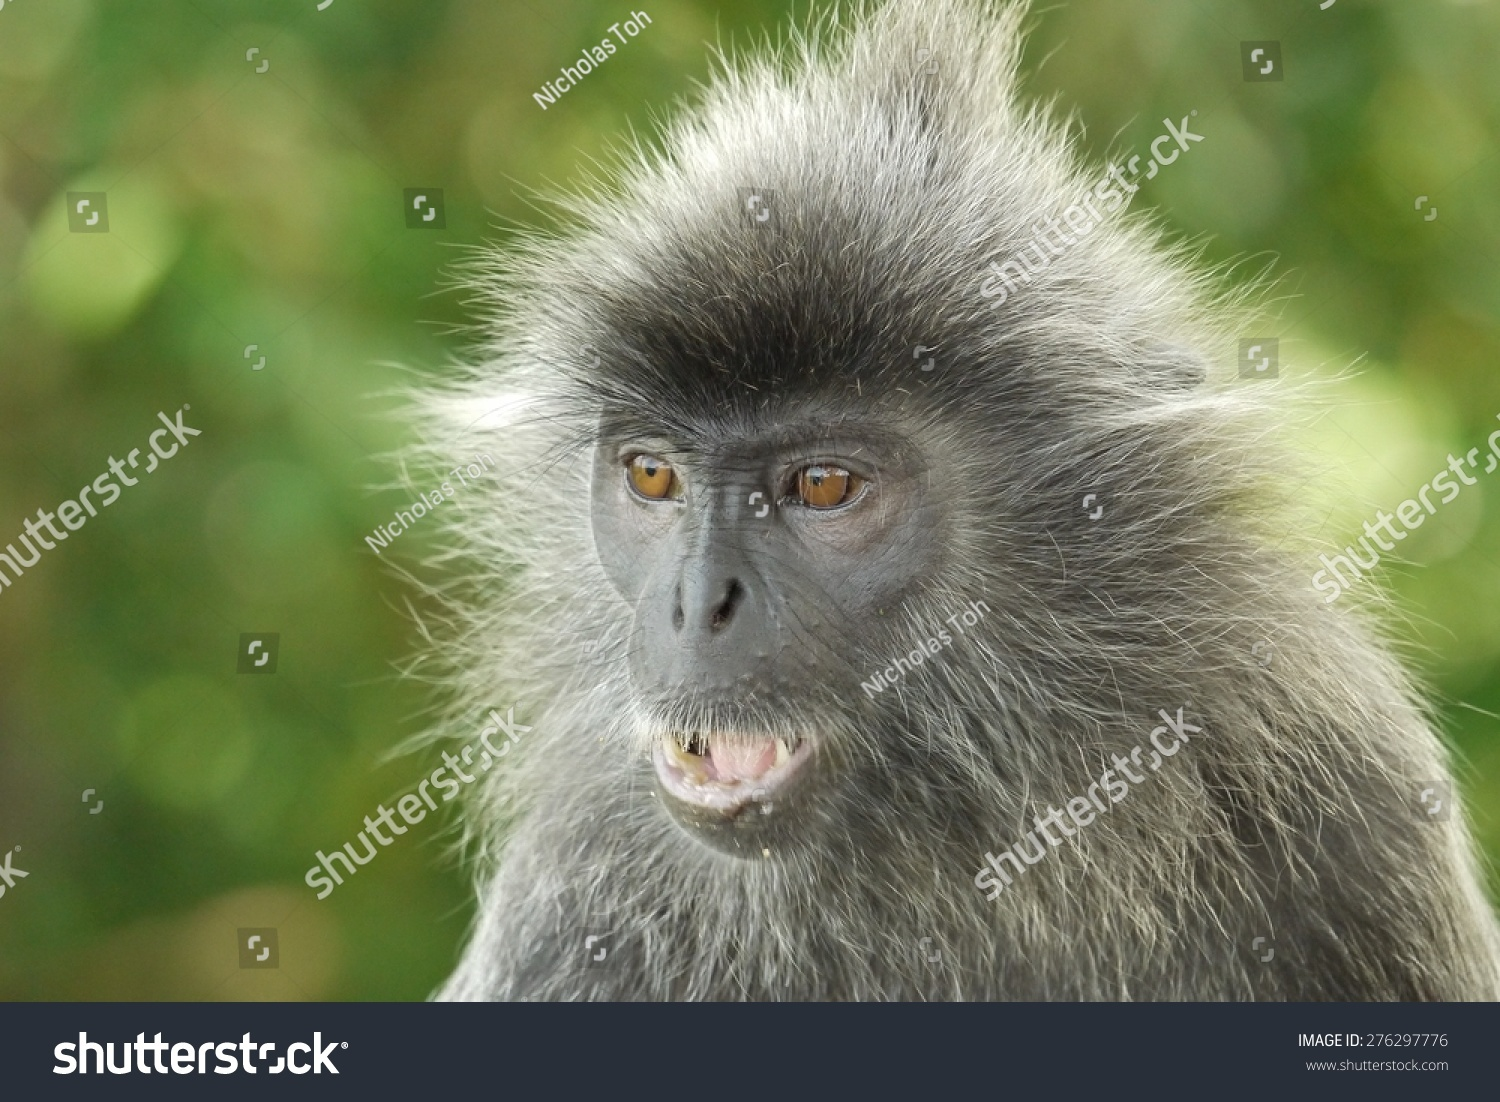 Portrait of a Silver Leaf Monkey which is an endangered species of monkey Photo was taken in Malaysia